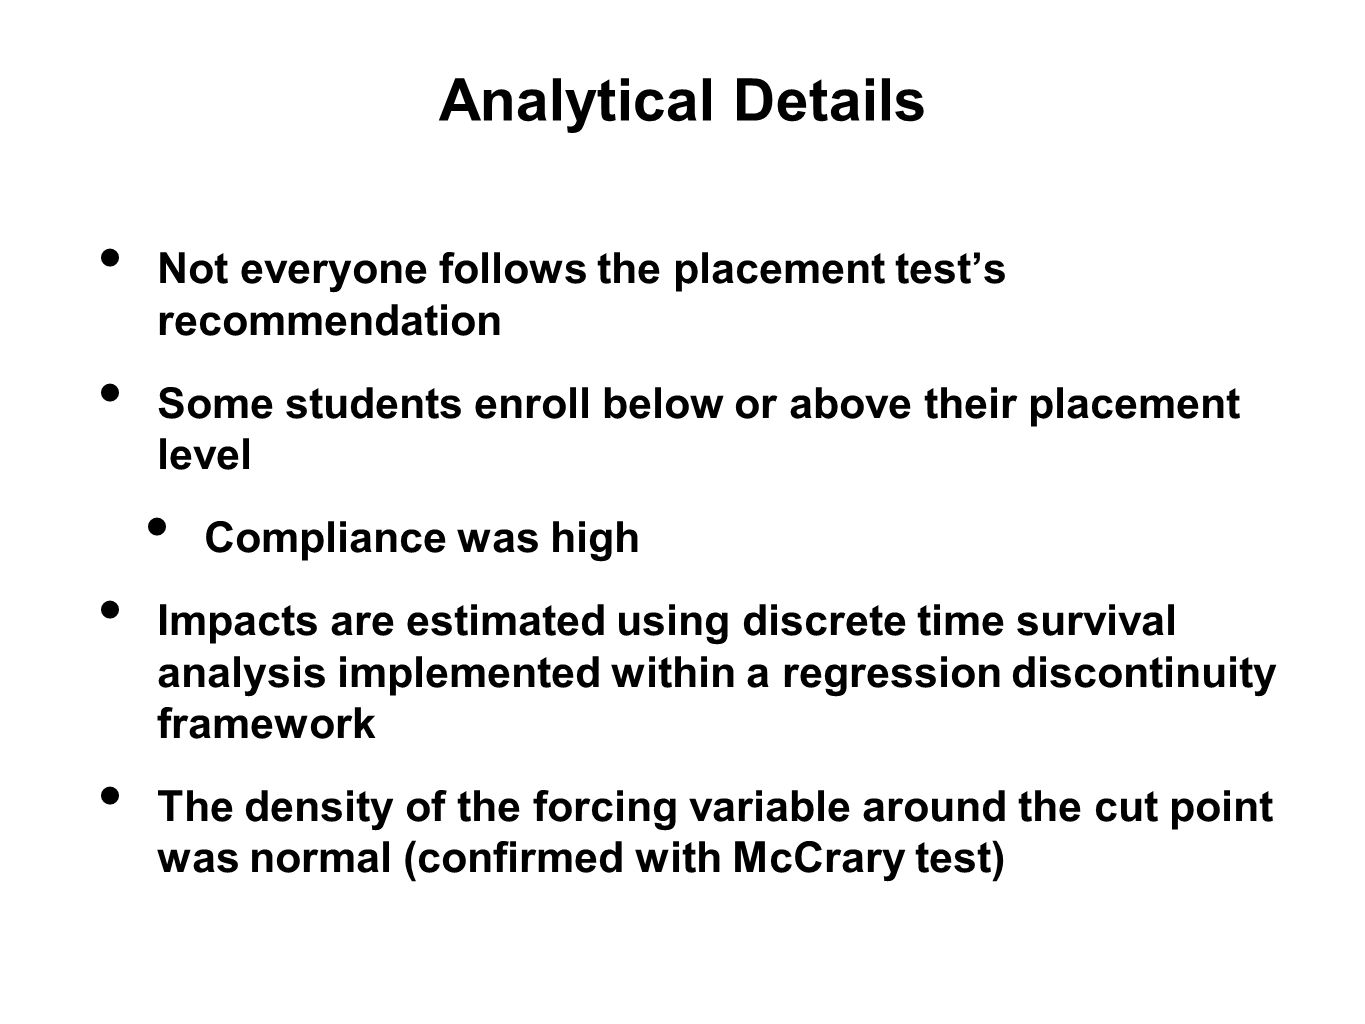 Analytical Details Not everyone follows the placement test's recommendation Some students enroll below or above their placement level Compliance was high Impacts are estimated using discrete time survival analysis implemented within a regression discontinuity framework The density of the forcing variable around the cut point was normal (confirmed with McCrary test)